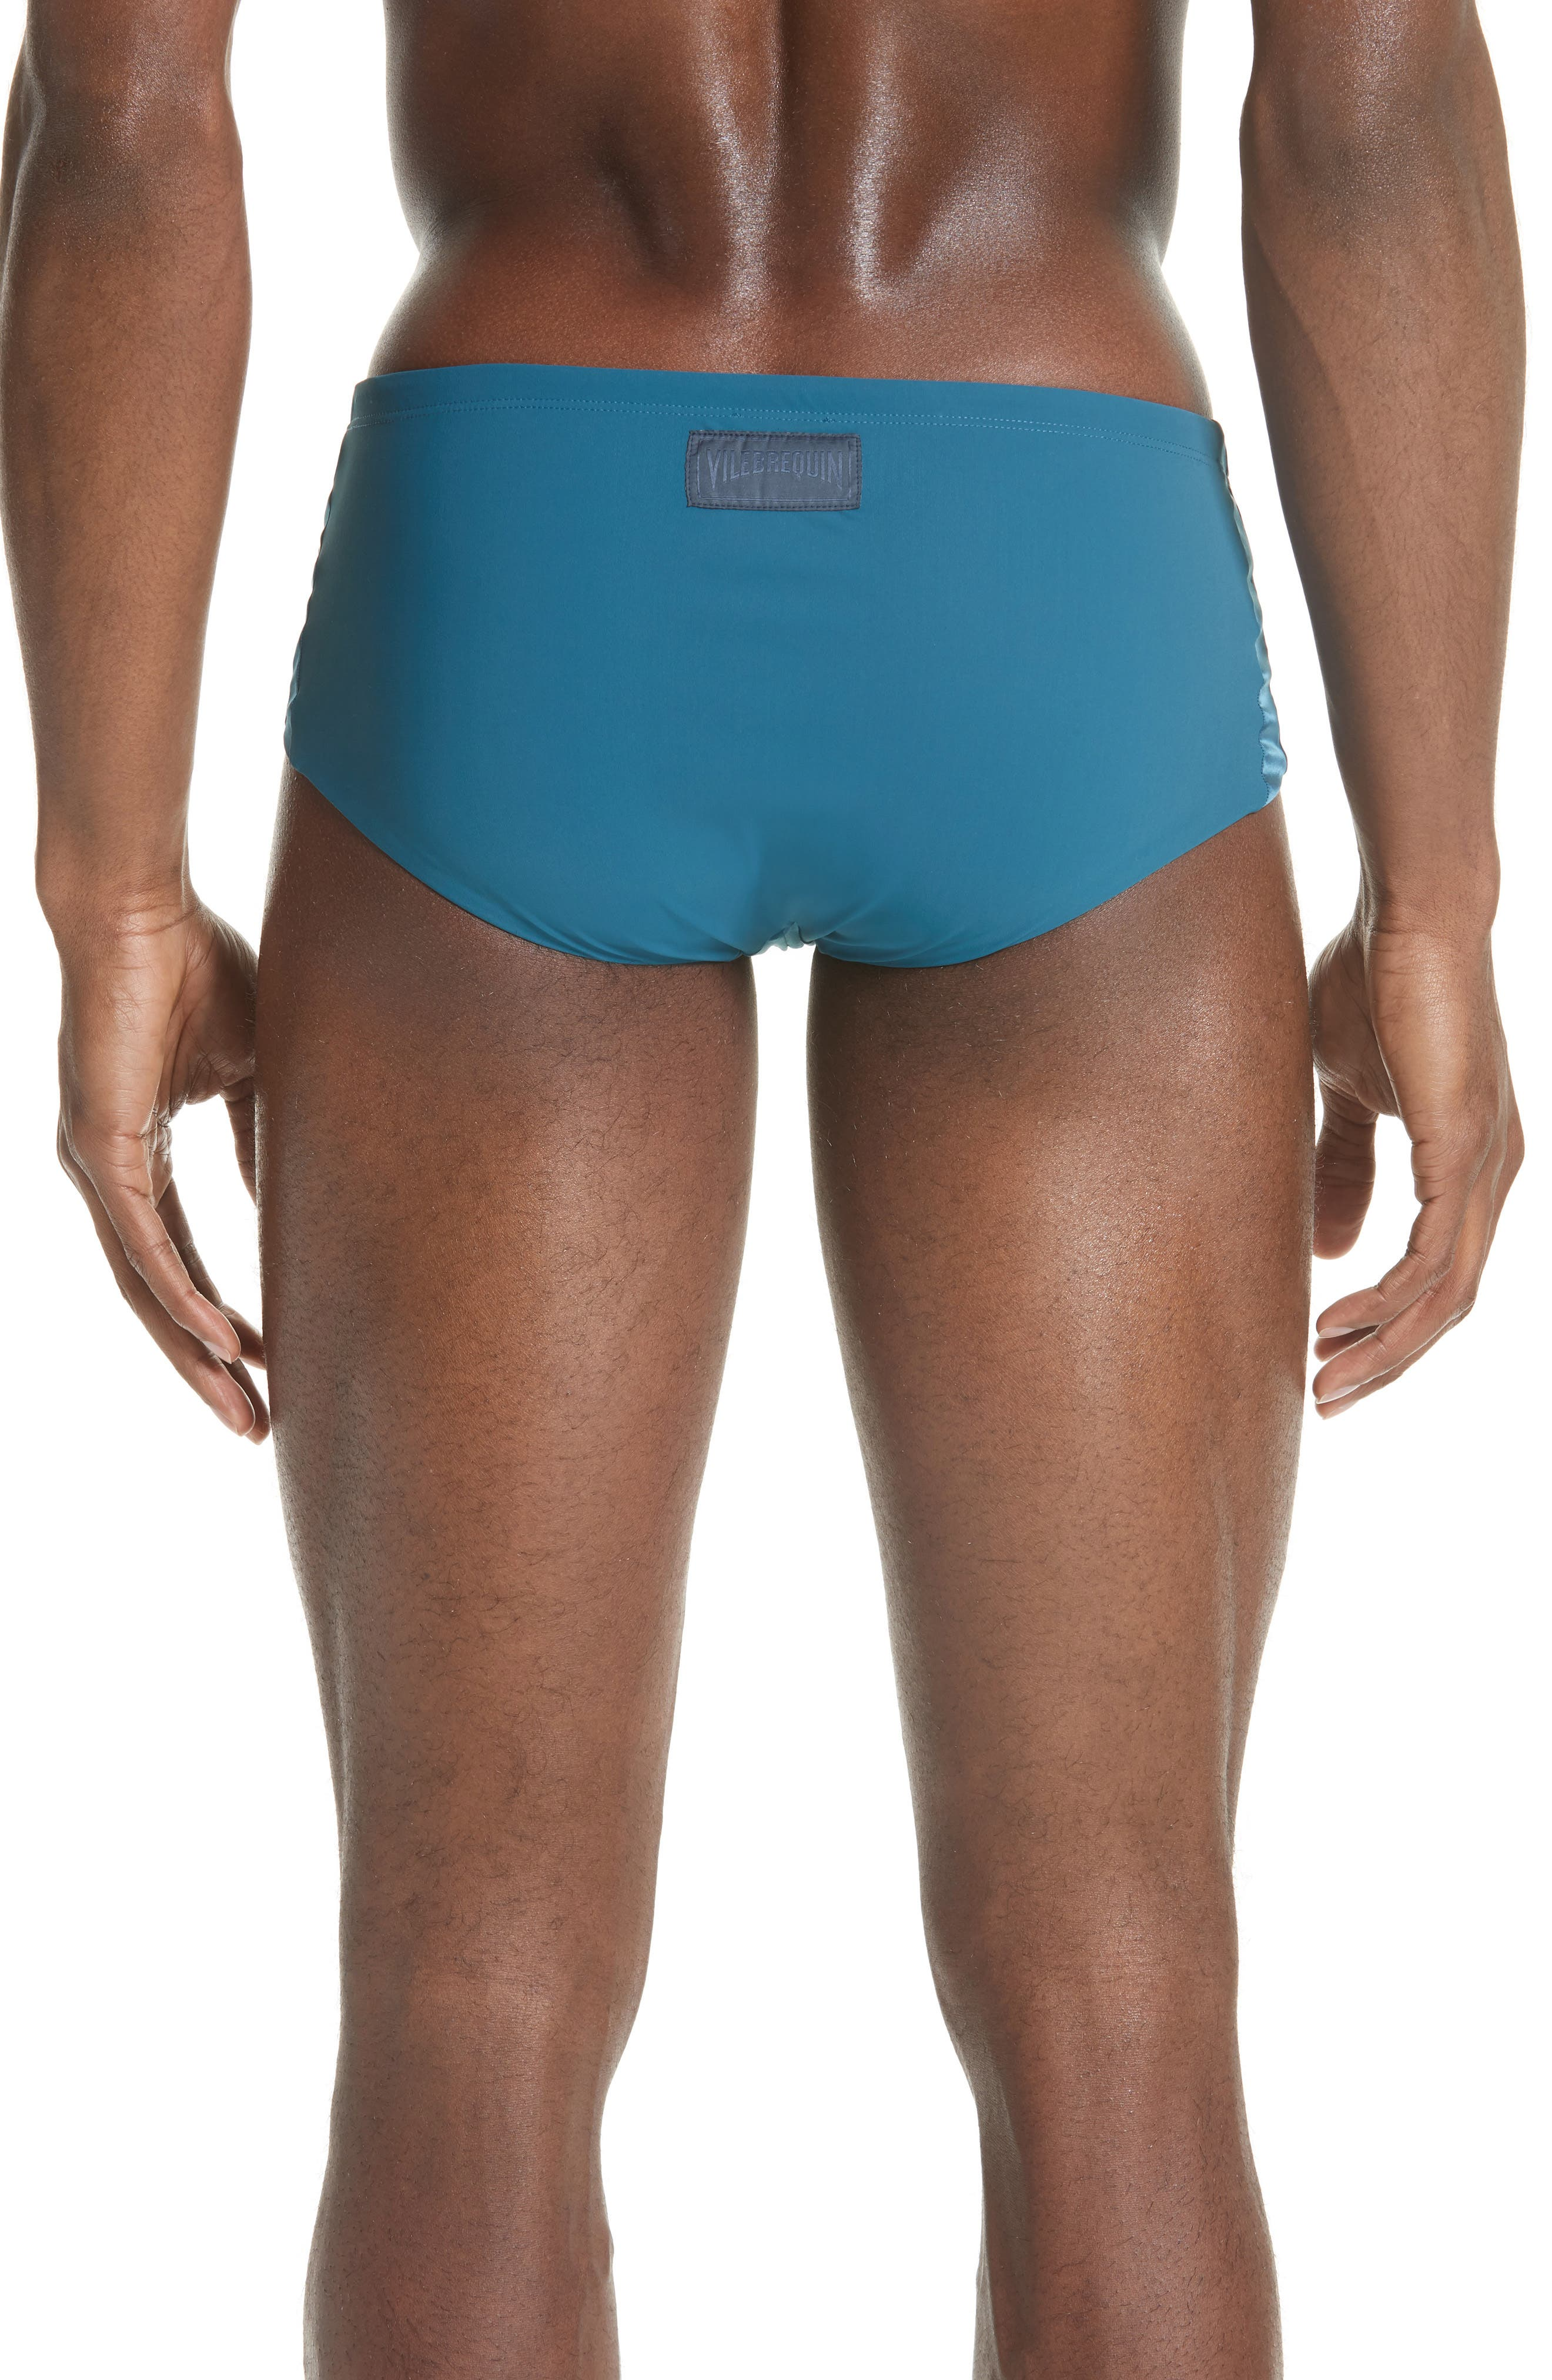 Smoking Jersey Swim Briefs,                             Alternate thumbnail 2, color,                             EMBRUNS